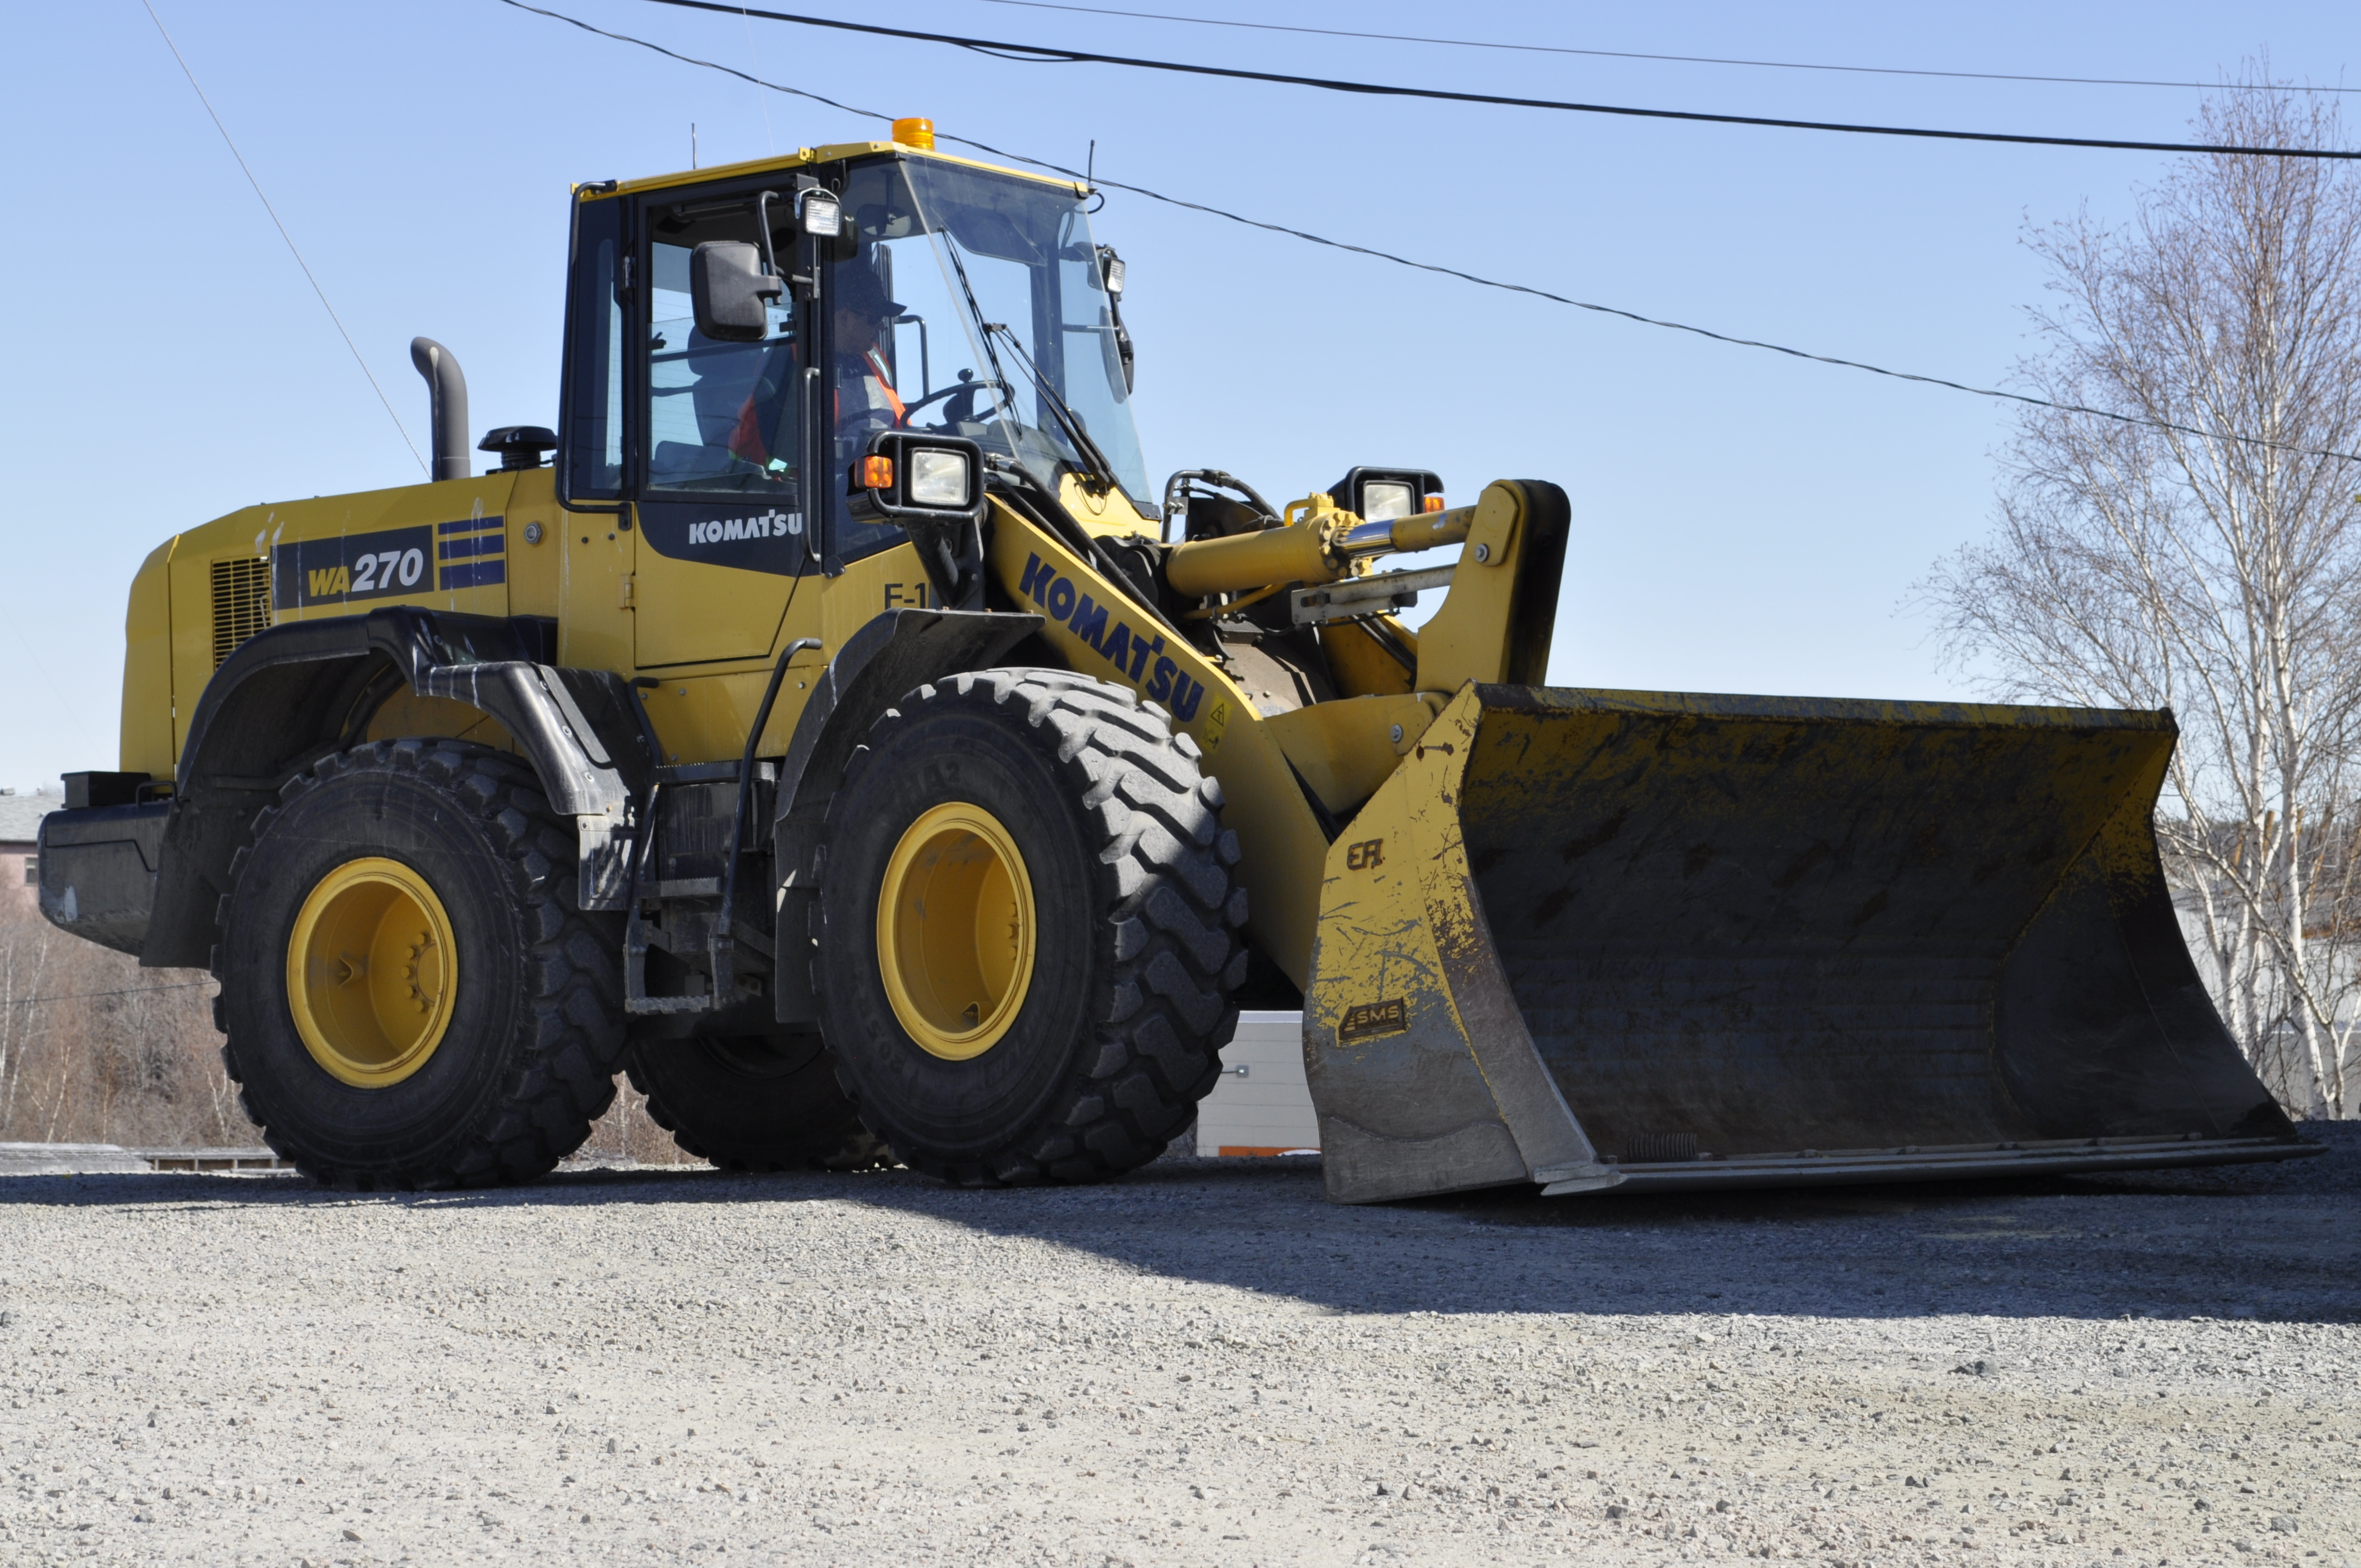 Paul Betsina operates a loader at the Det'on Cho facility in Ndilo. The business arm of the Yellowknives Dene is itself a major employer in the territory. (Alex Brockman/CBC)